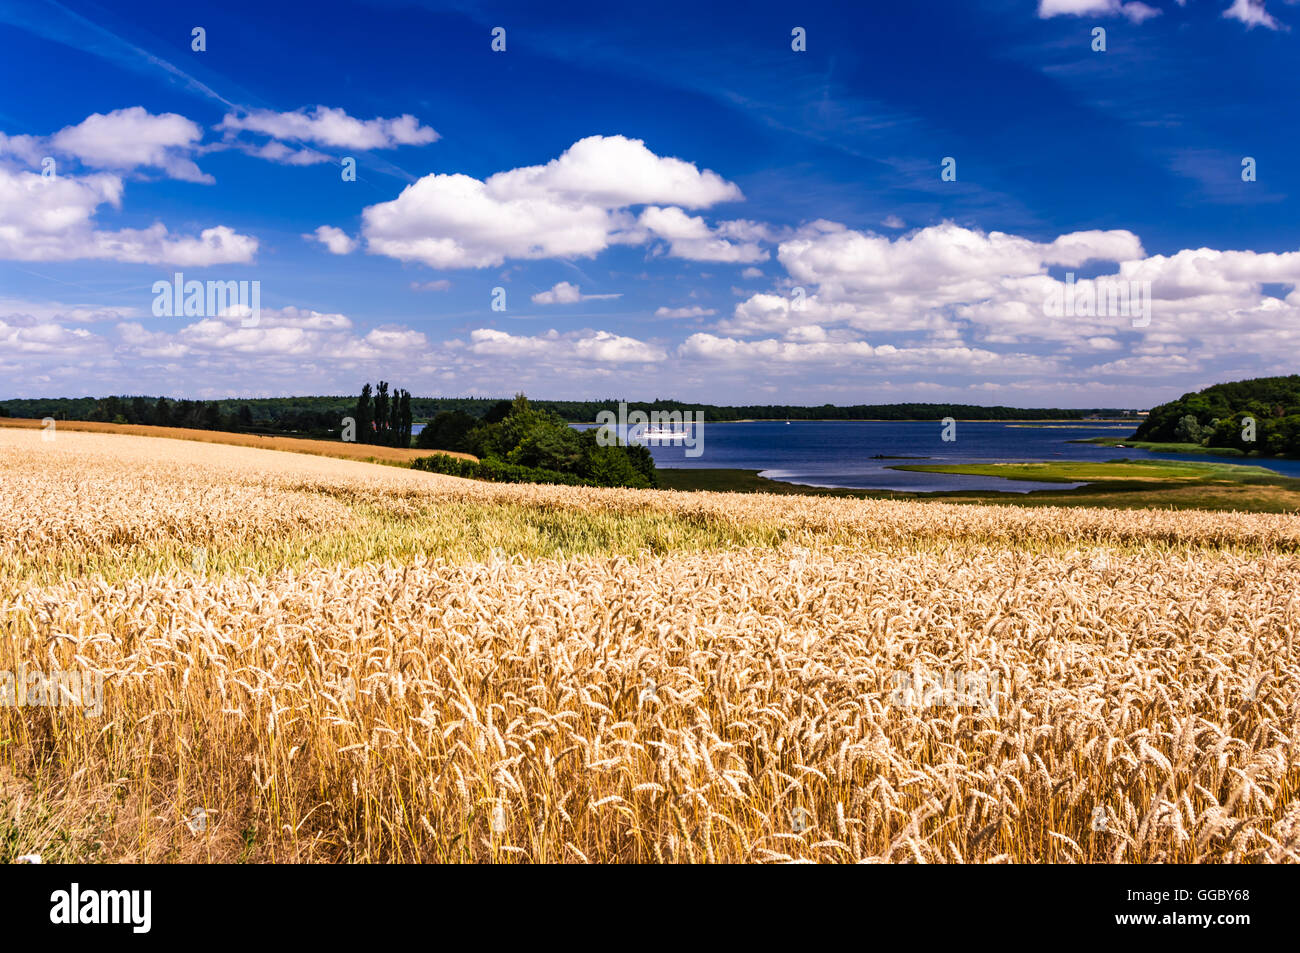 Golden fields in front of the turquoise waters of the Roskilde fjorden with the dark green forrest at its shores - Stock Image